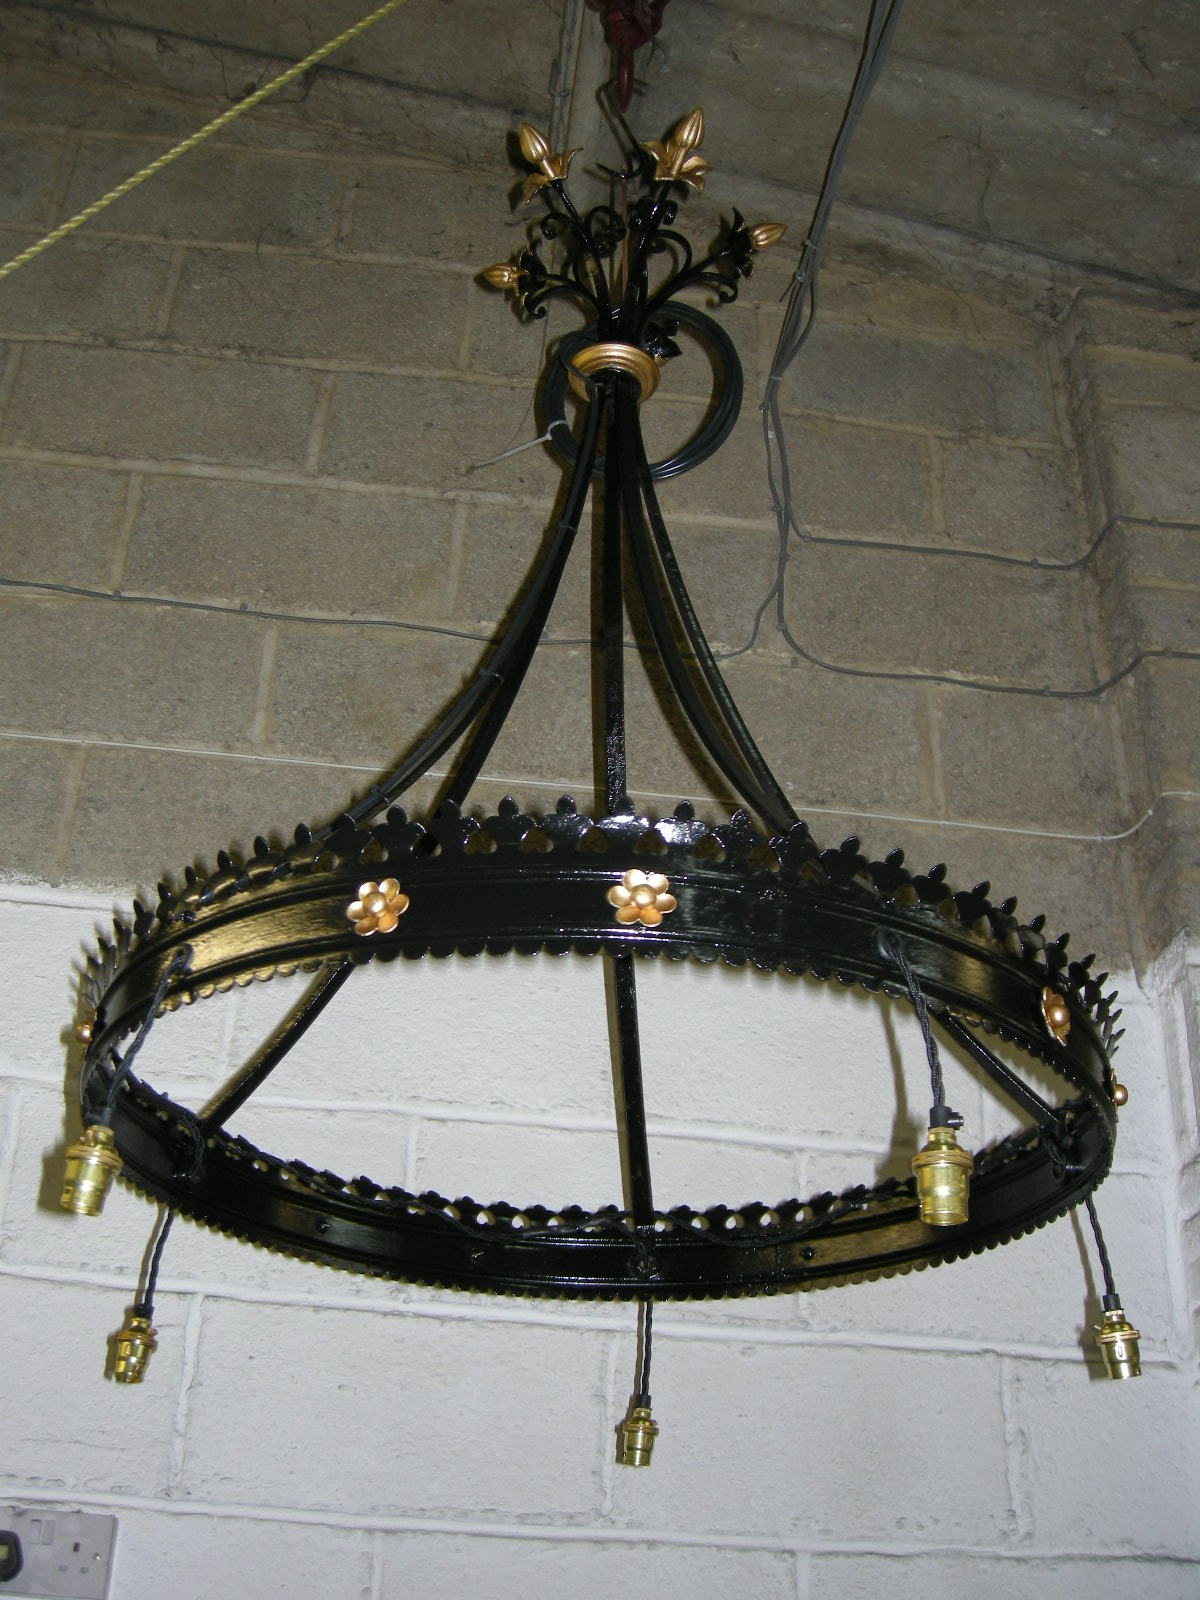 Antique Metals Chandelier Repairs Restoration Cleaning And Rewiring Chandeliers Before After